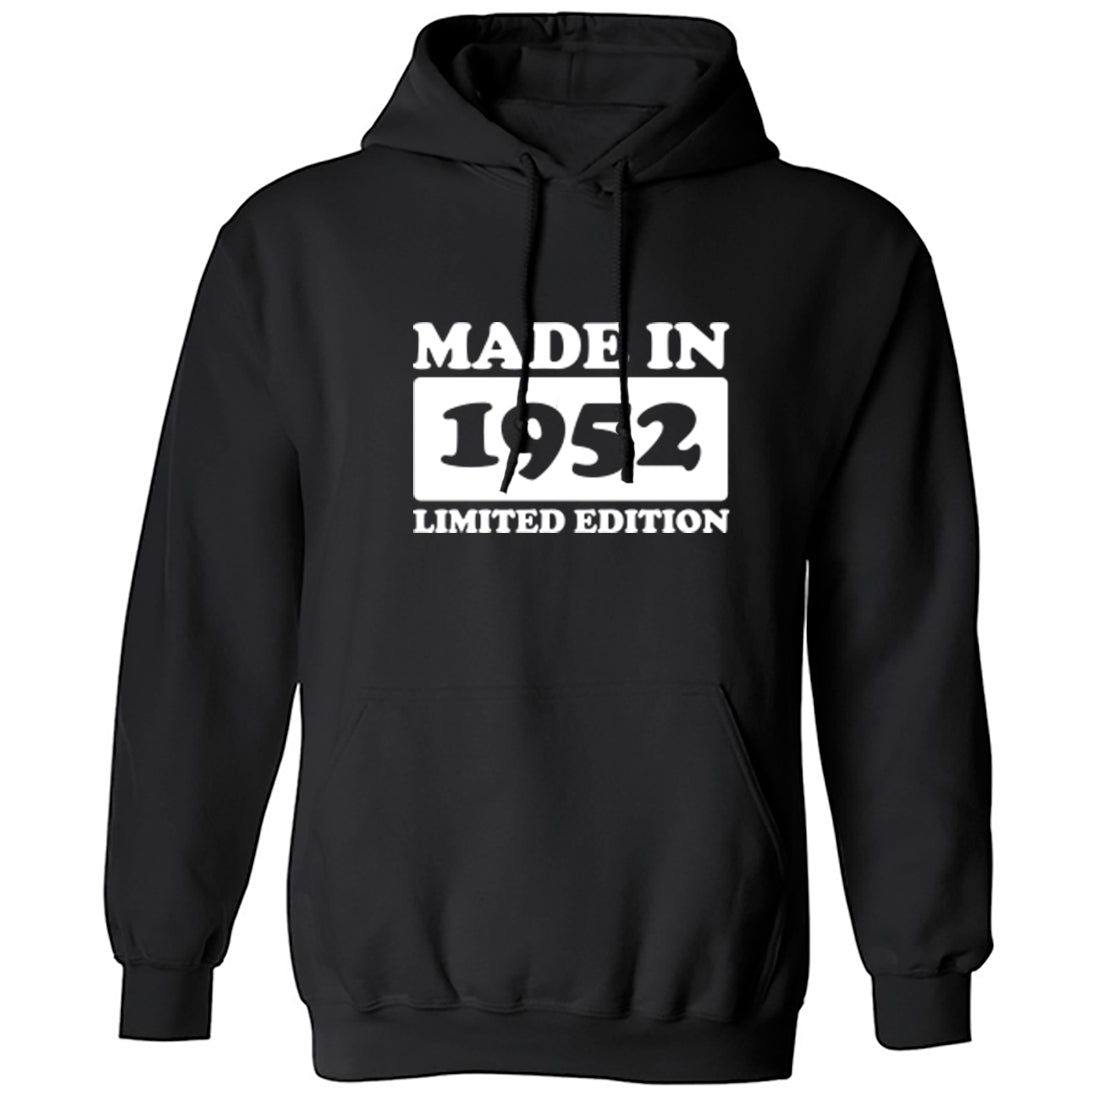 Made In 1952 Limited Edition Unisex Hoodie K1909 - Illustrated Identity Ltd.